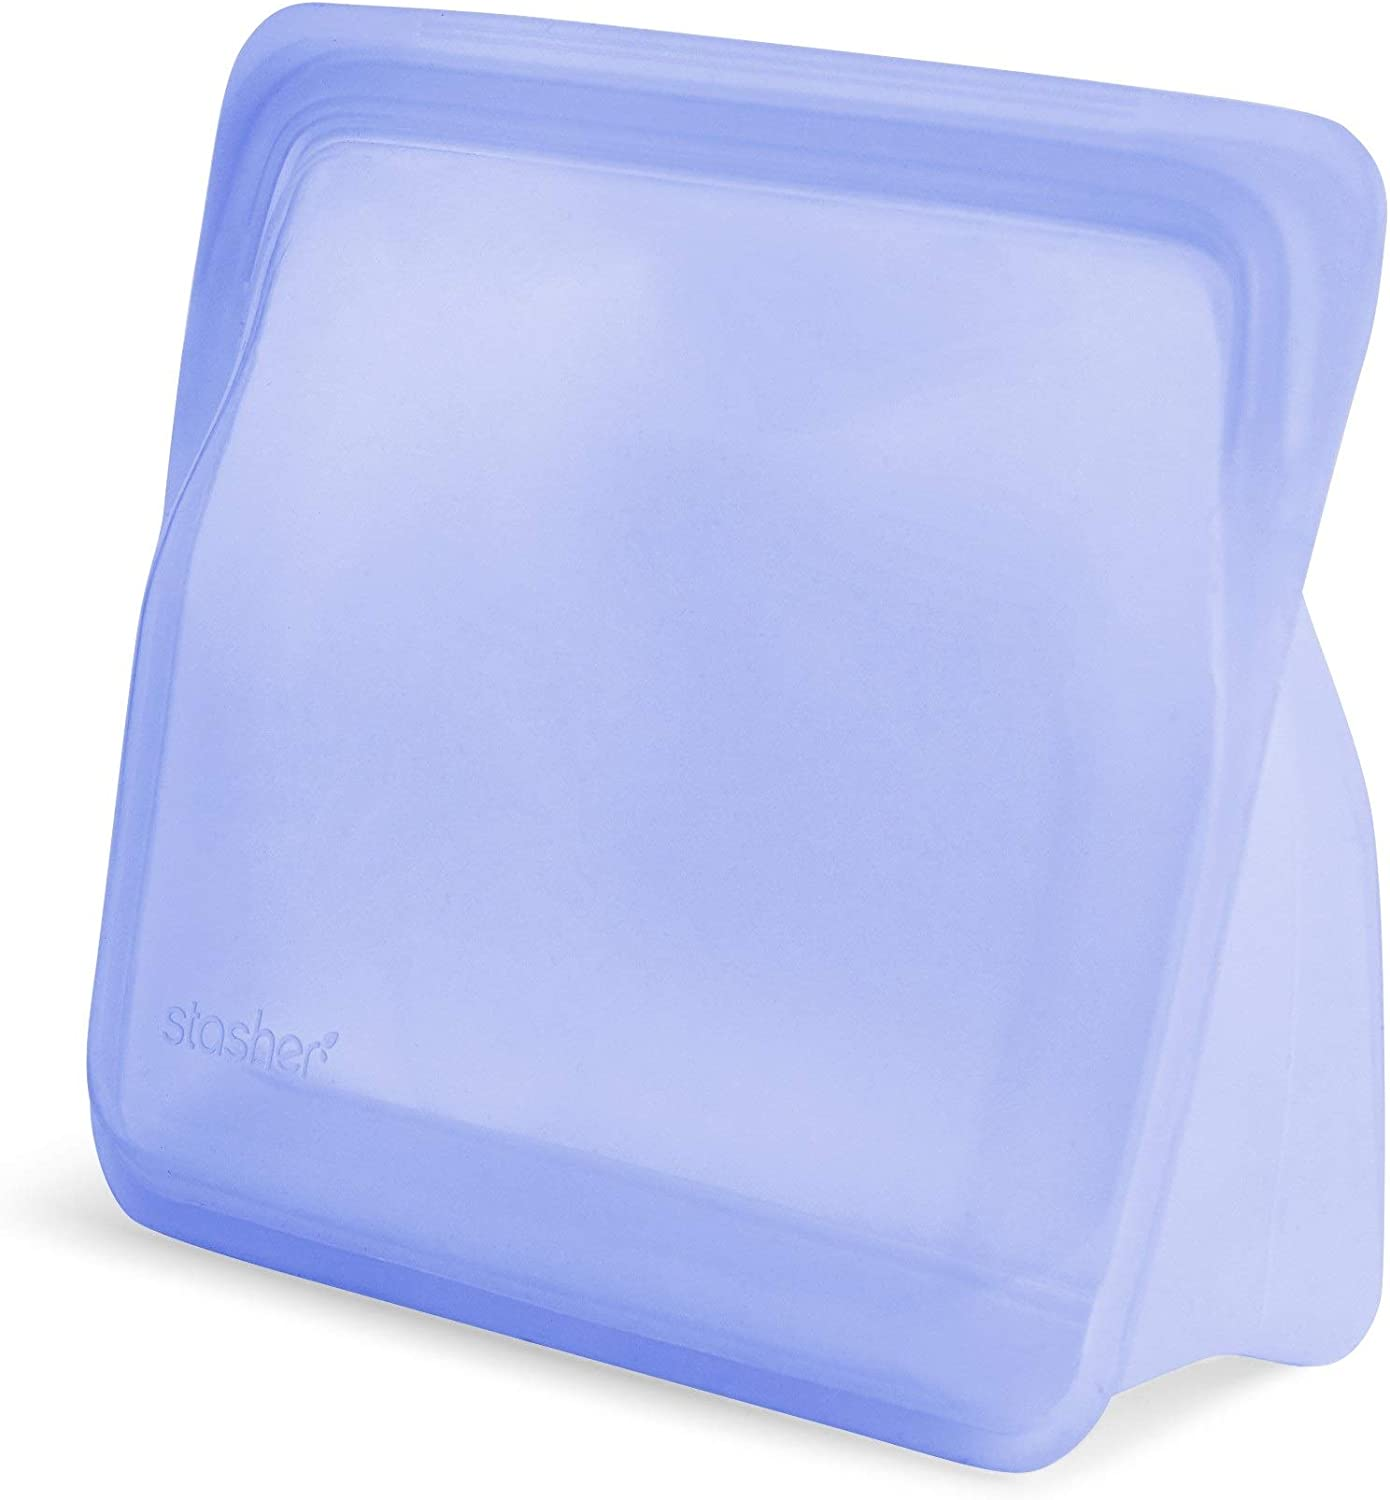 Stasher Re-Usable Food-Grade Platinum Silicone Stand Up Bag for Eating from/Cooking, Freezing and Storing in/Organising/Travelling, 17.80 x 20.30 cm/1.65 Litre/56 Fluid Ounces, Amethyst